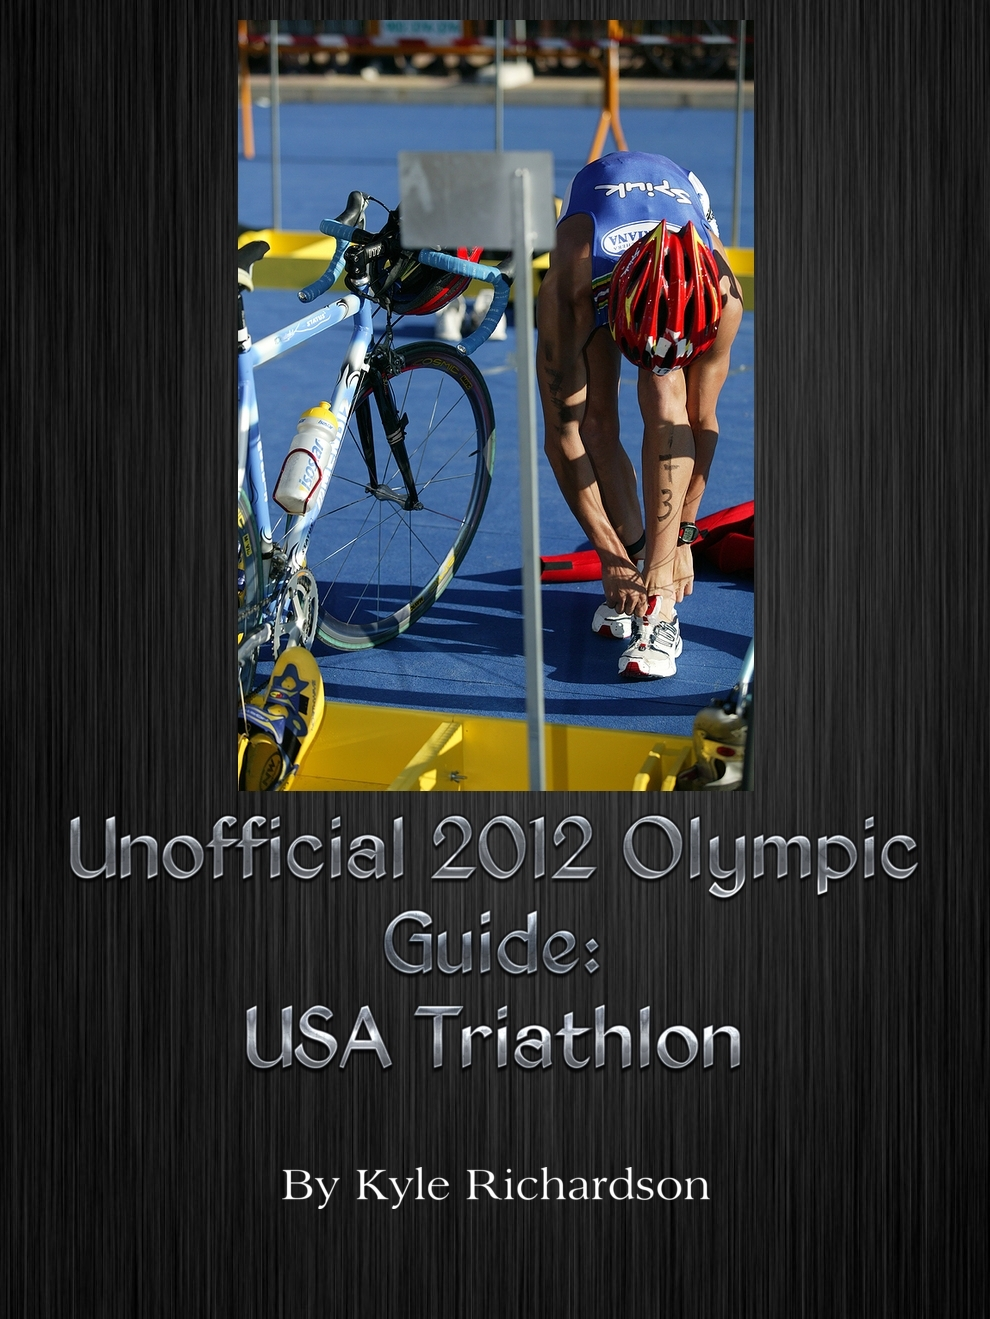 Unofficial 2012 Olympic Guides: USA Triathlon